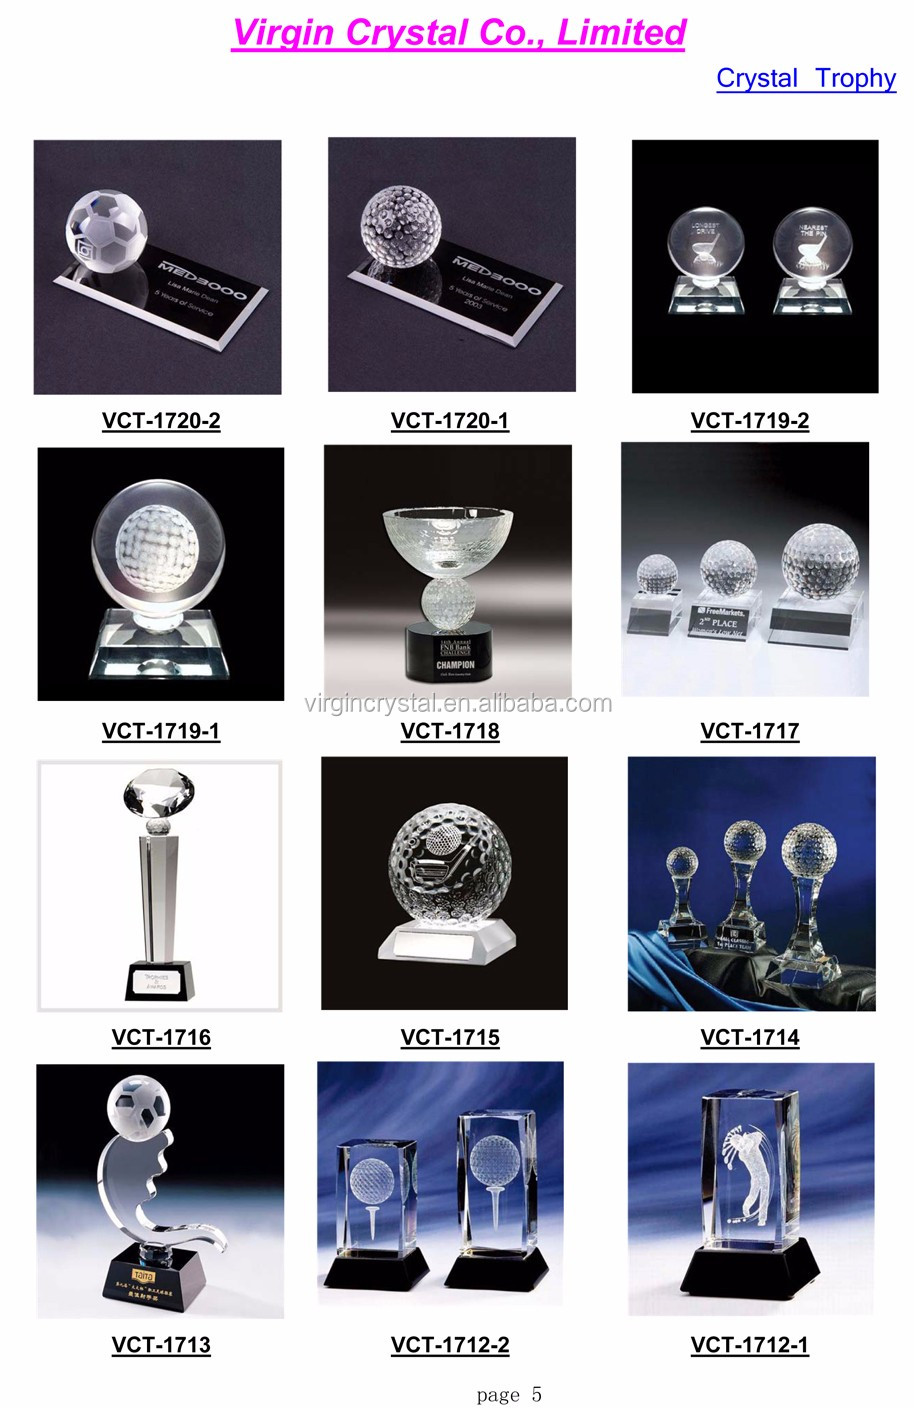 Unique Custom Crystal Glass Golf Trophy Designs for Golf Tournament Awards